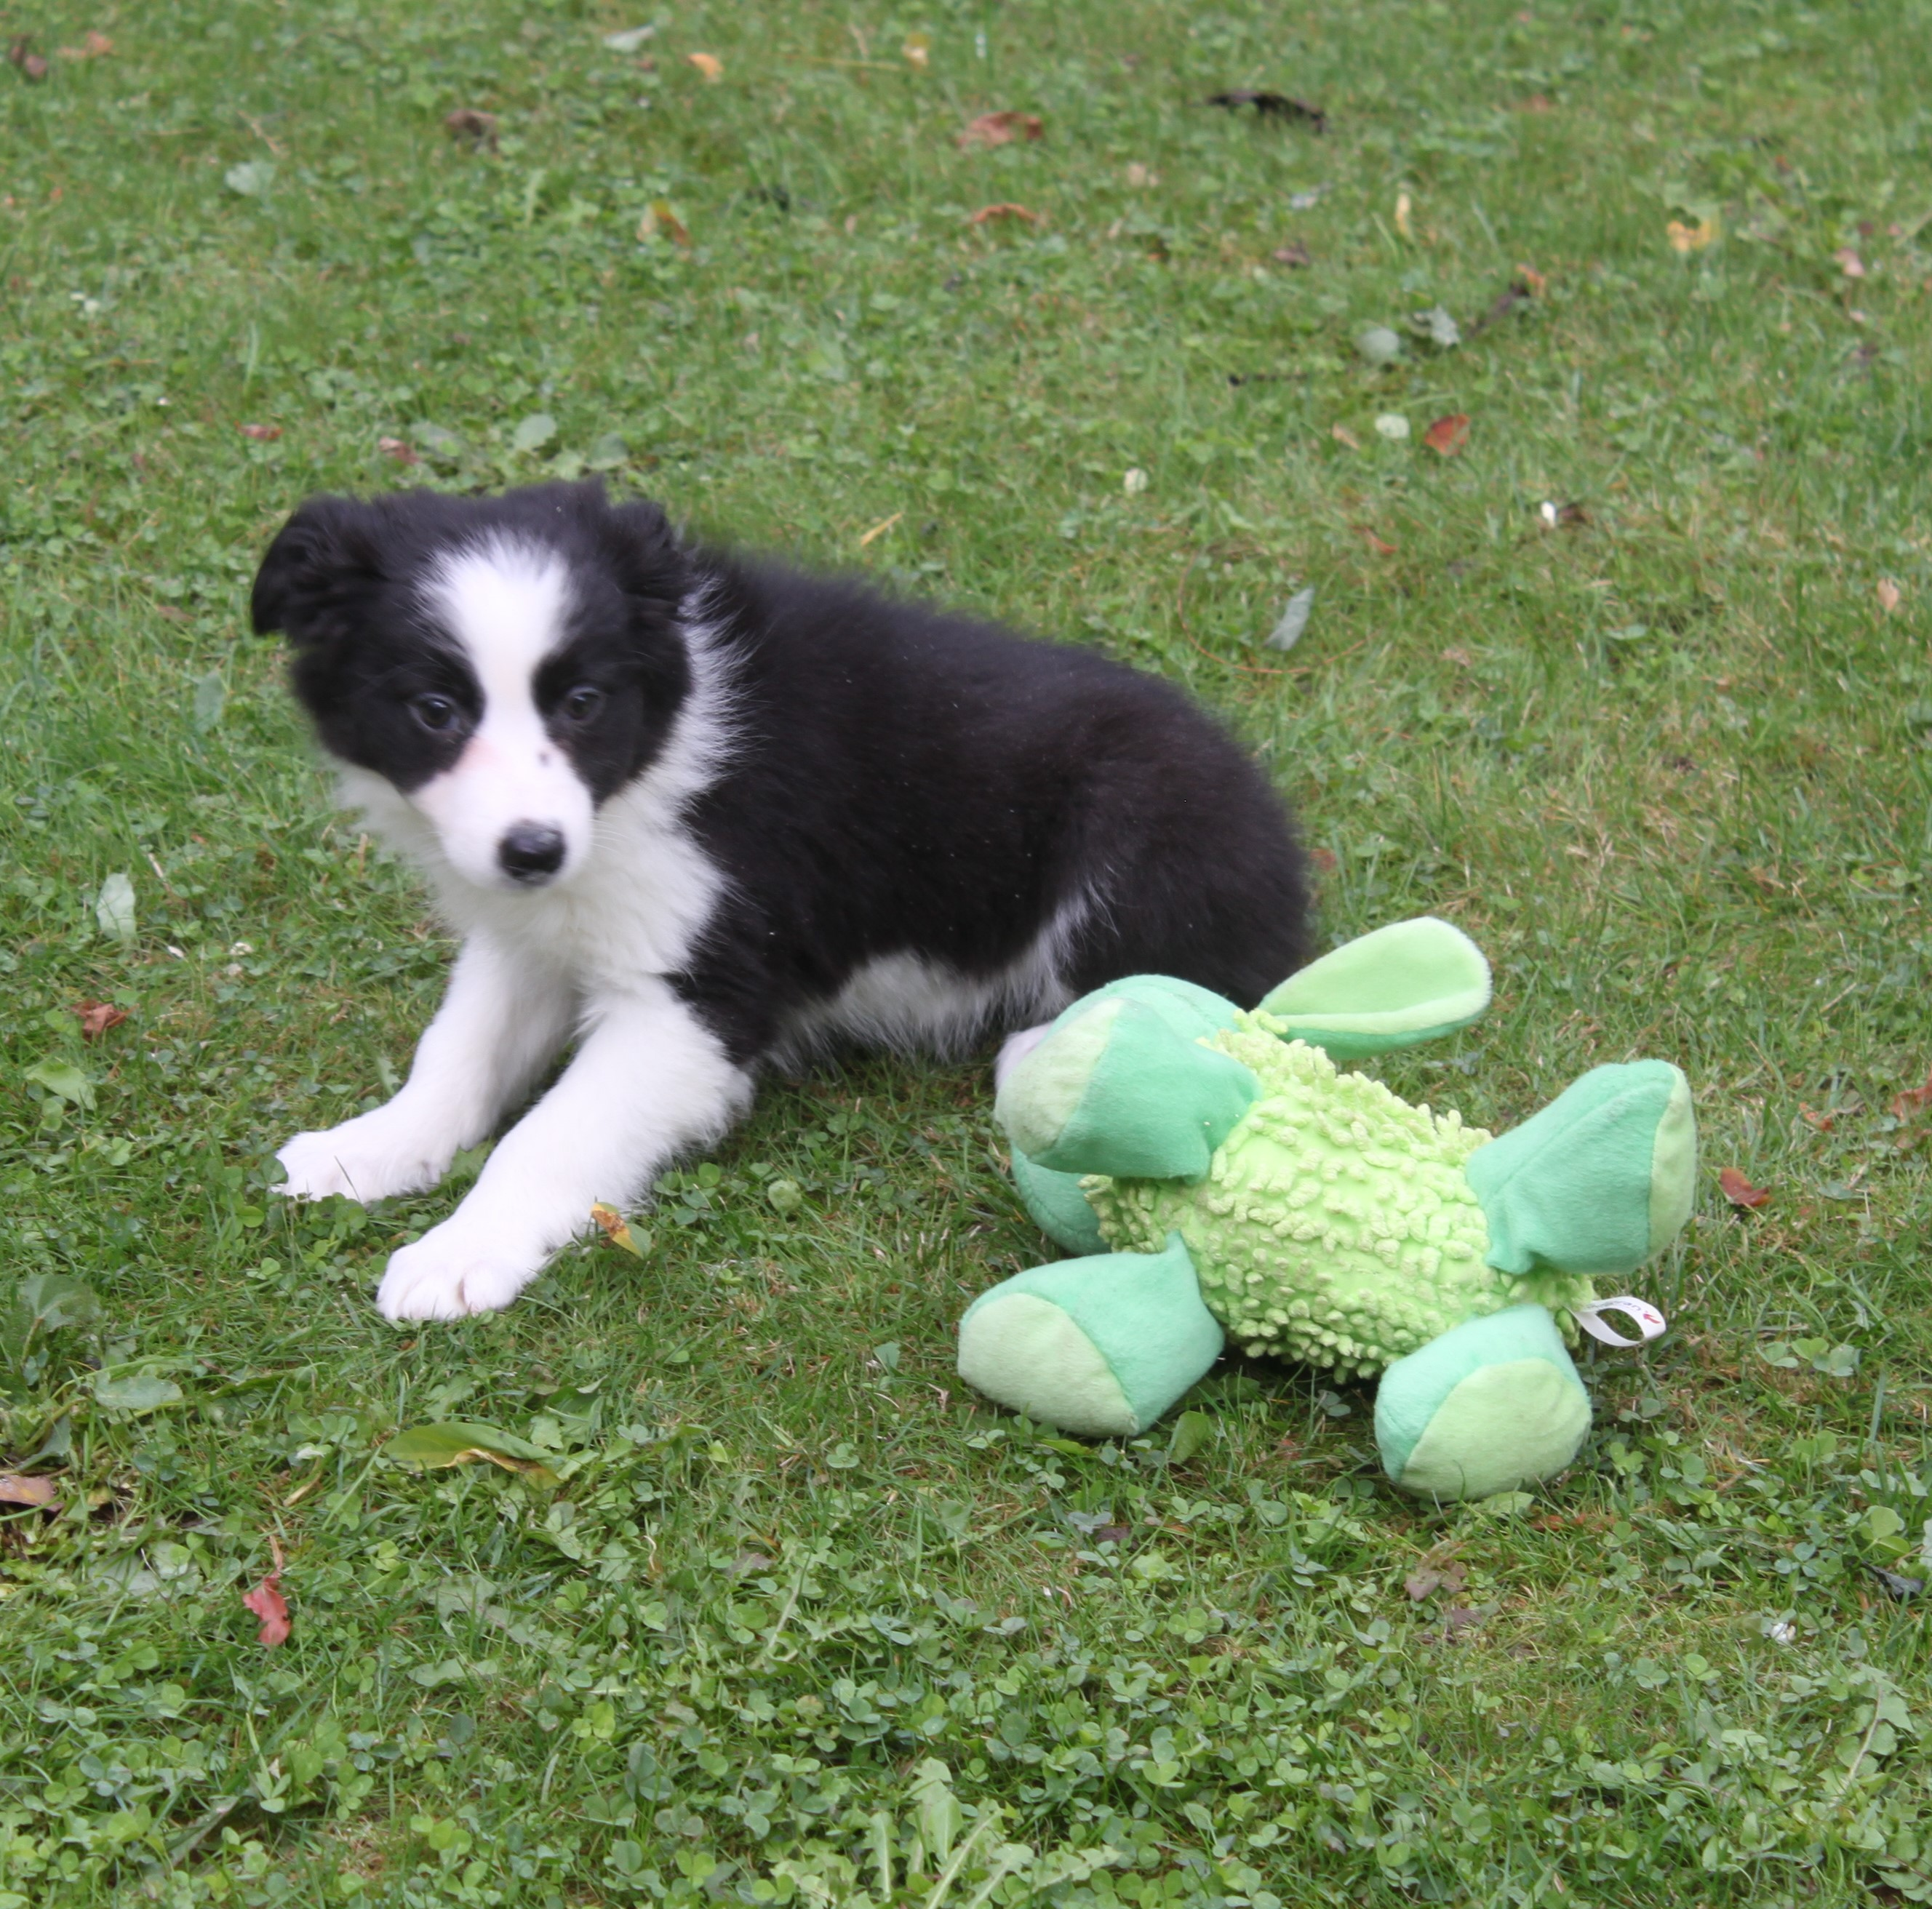 Border Collie puppy Pebbles